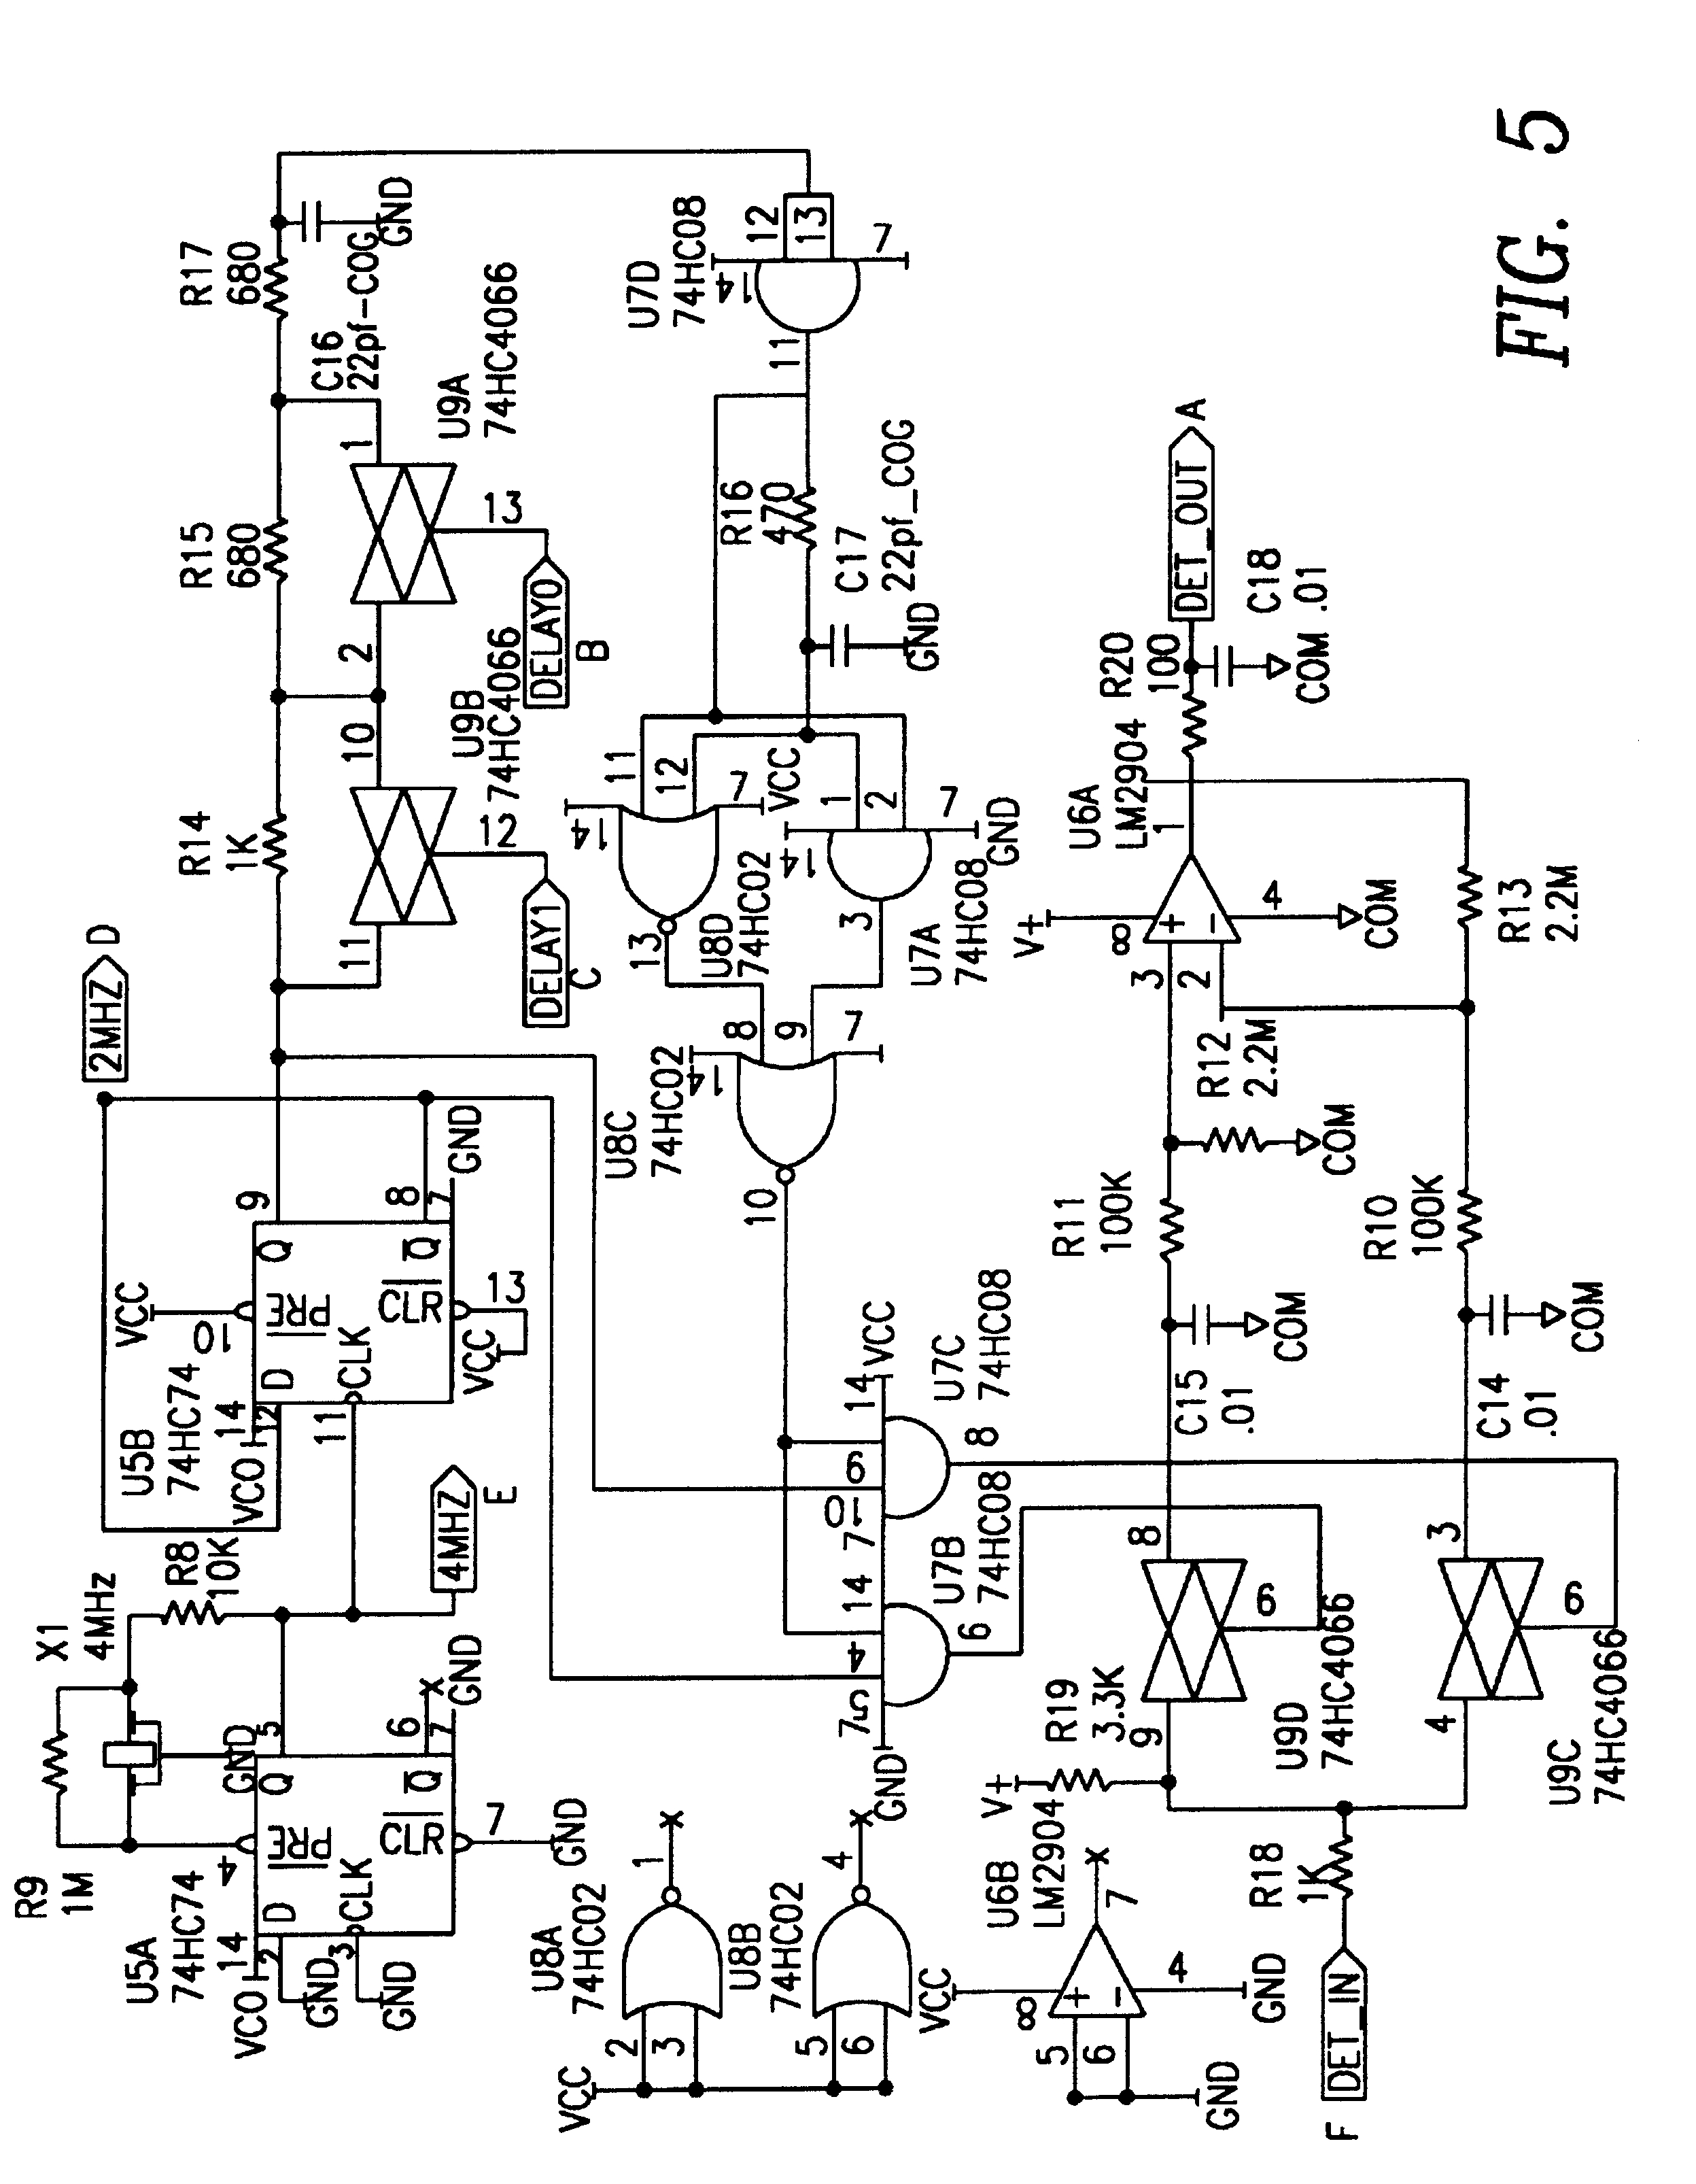 Water Heater Circuit Breaker Wiring